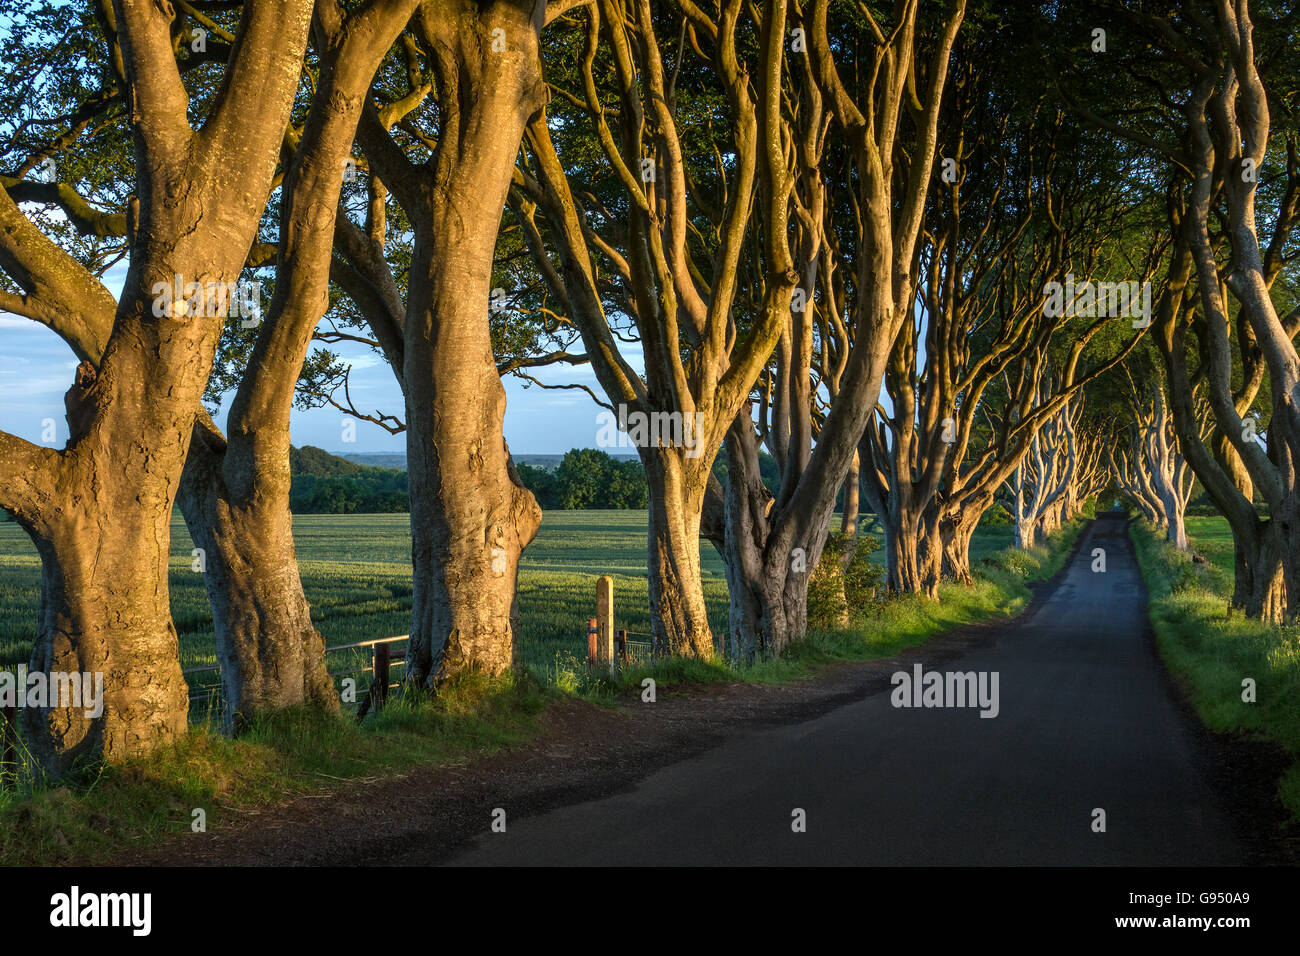 The 'Dark Hedges' - an avenue of ancient trees in County Antrim in Northern Ireland. - Stock Image